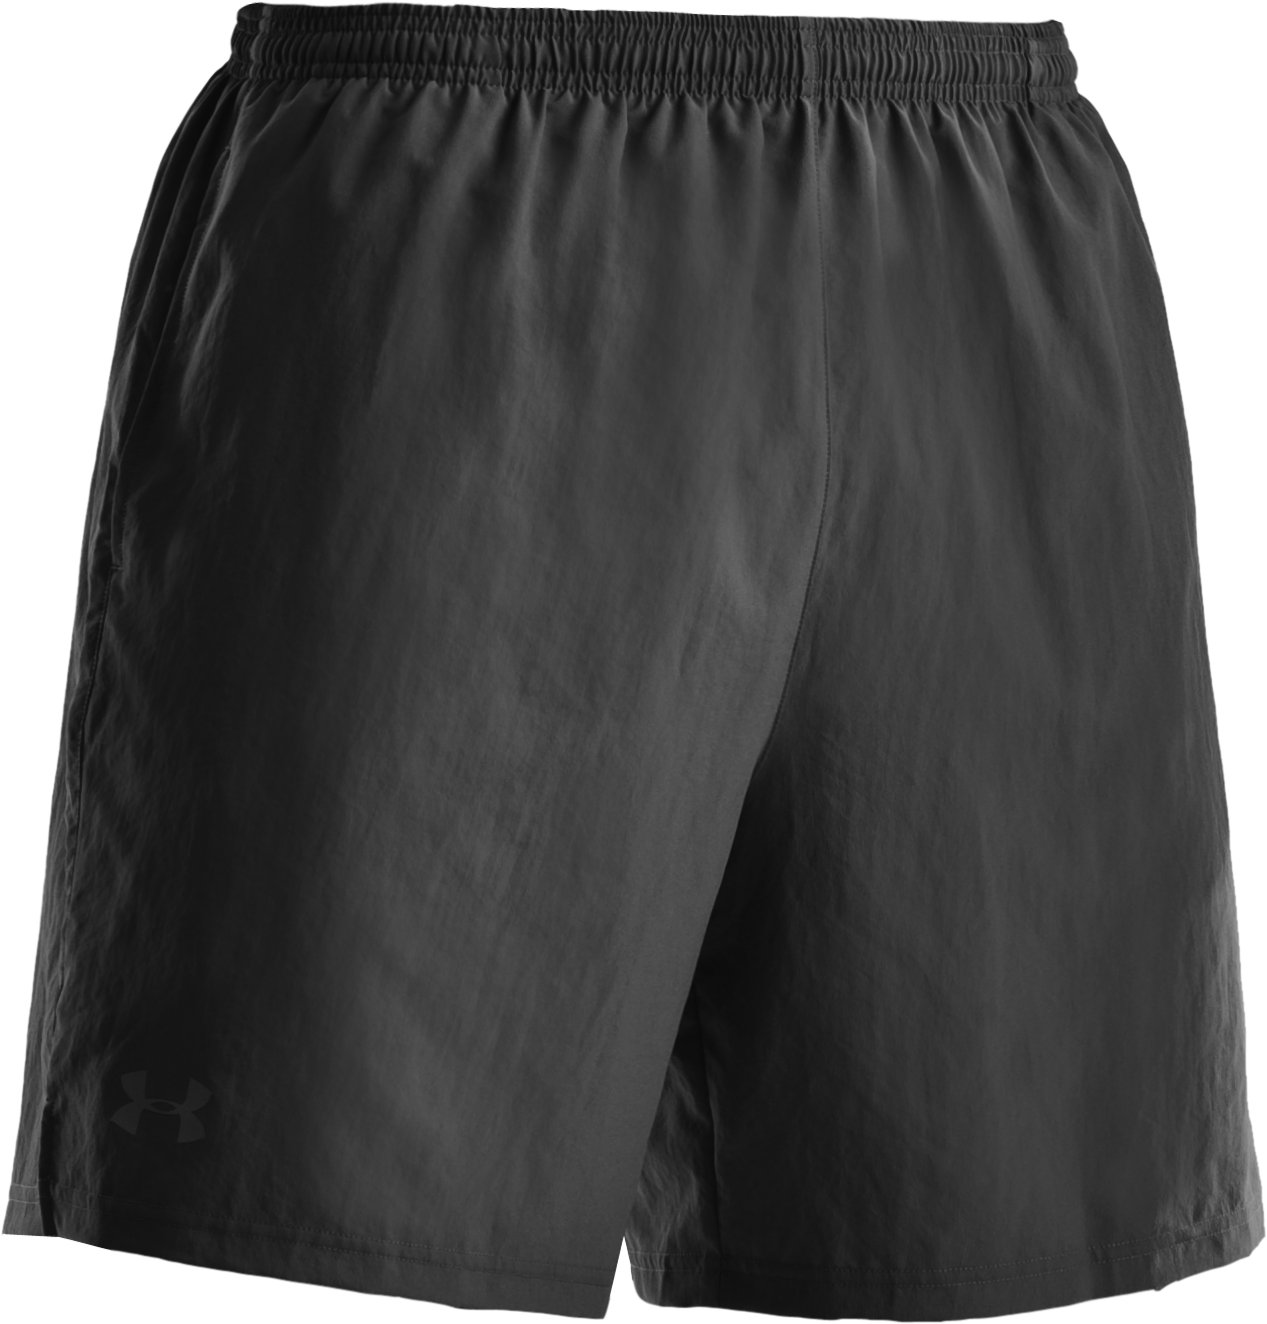 "Men's Tactical 6"" Training Shorts, Black , undefined"